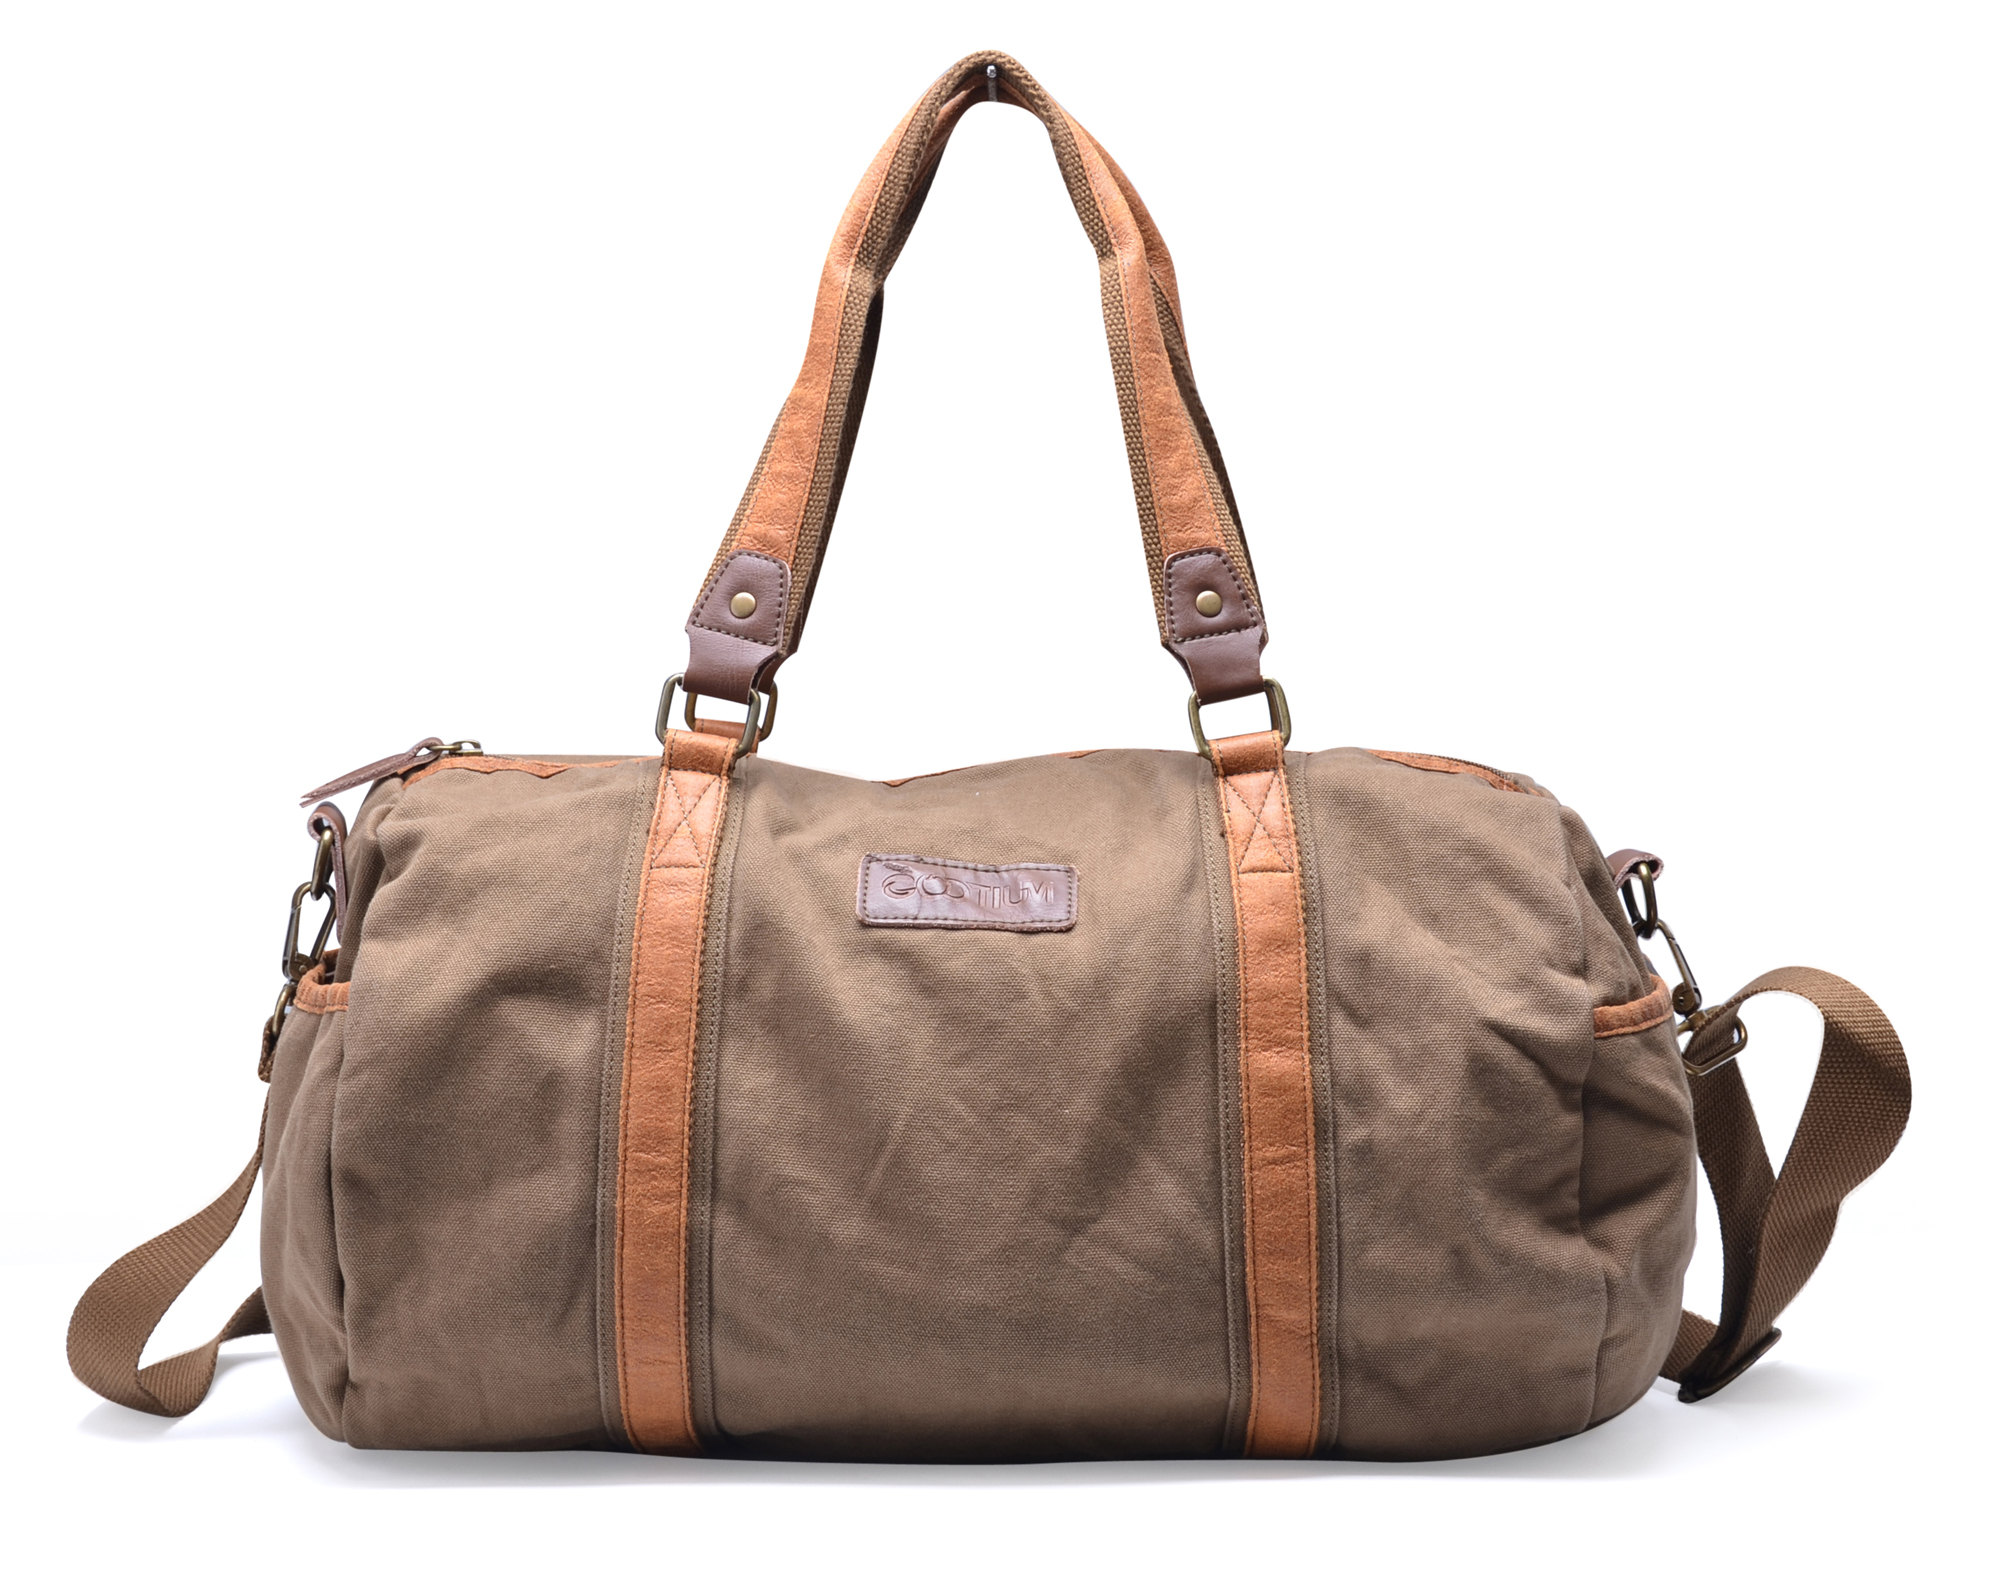 30317 Canvas Leather Traveling Sports Shoulder Duffle Weekend Gym ...